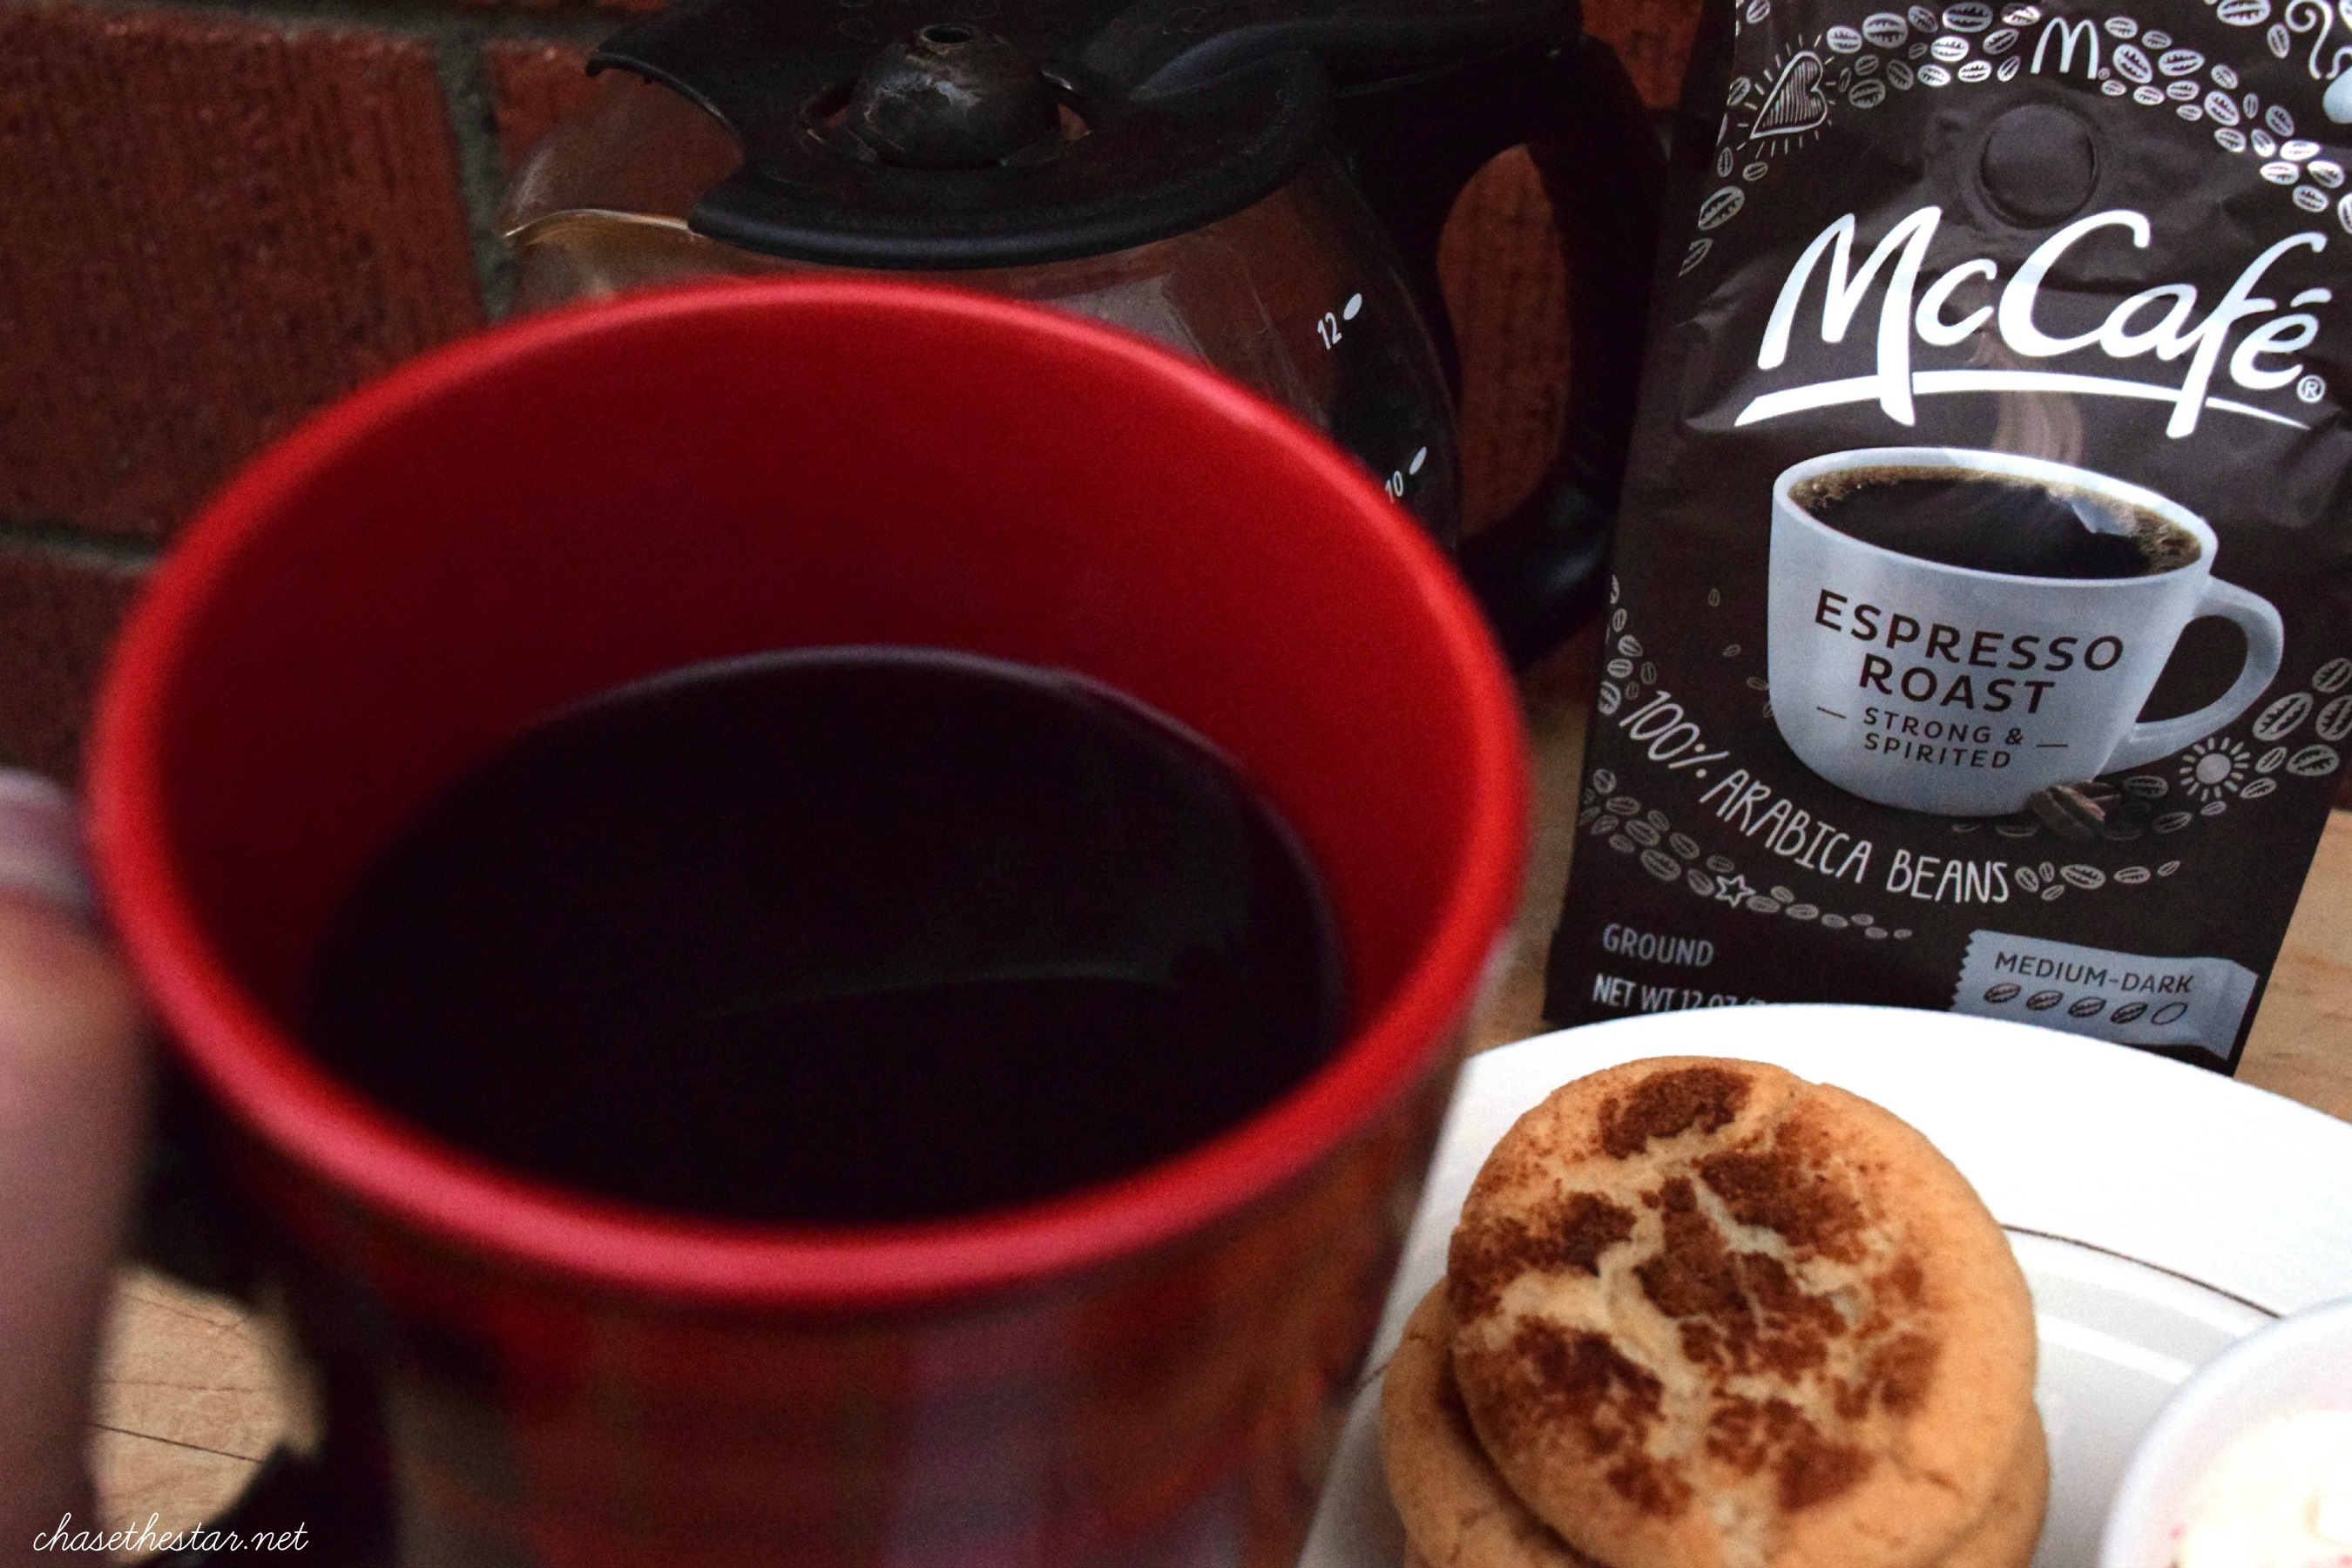 Love that I can make my own McCafe coffee at home now! #McCafeAtHome #IC #ad